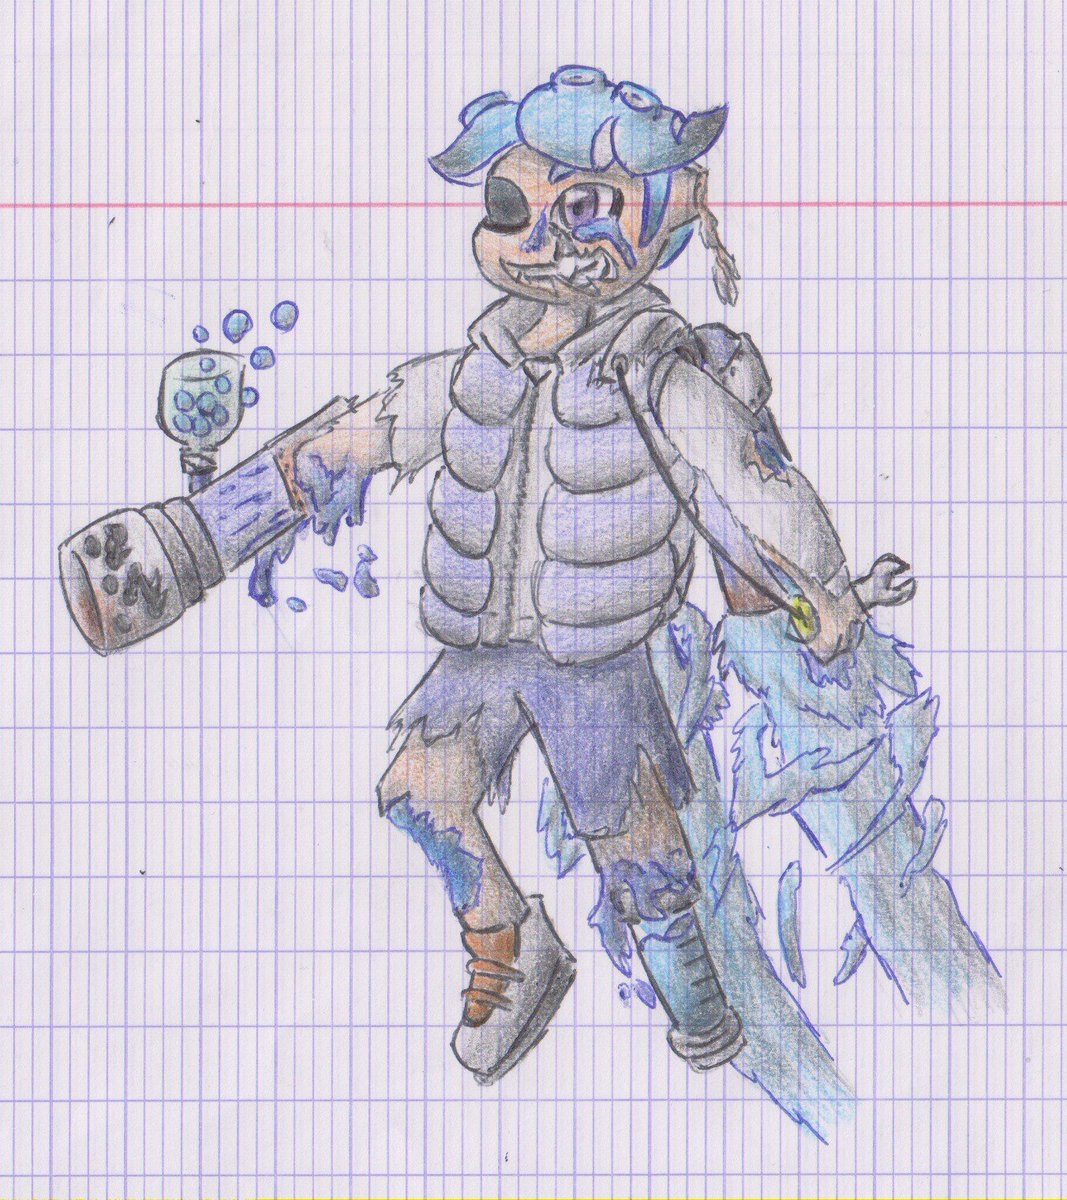 @chubbidust there is my version of the octo/squid zombie (and I redisigne the weapons and the ink tank, I juste had the ink bottle from the octo expansion)